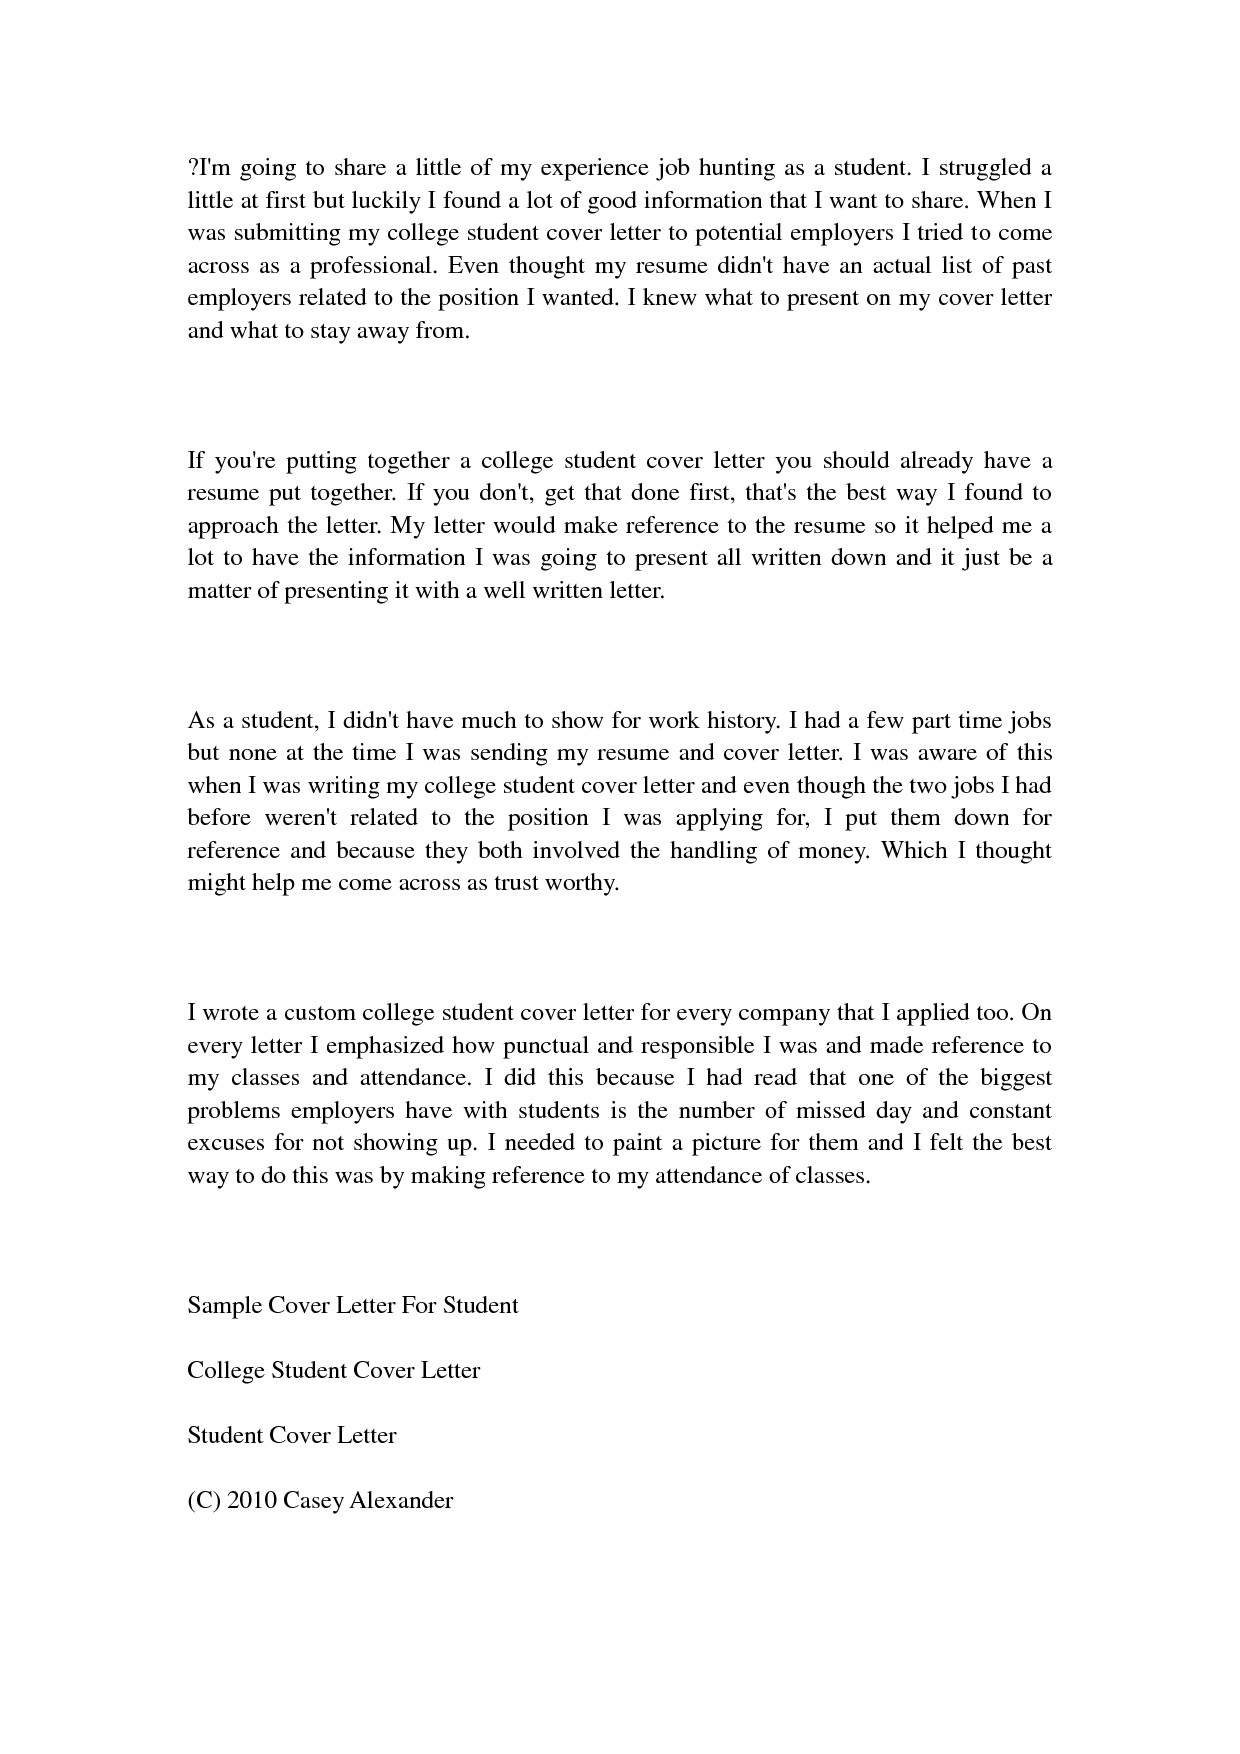 college student cover letter examples